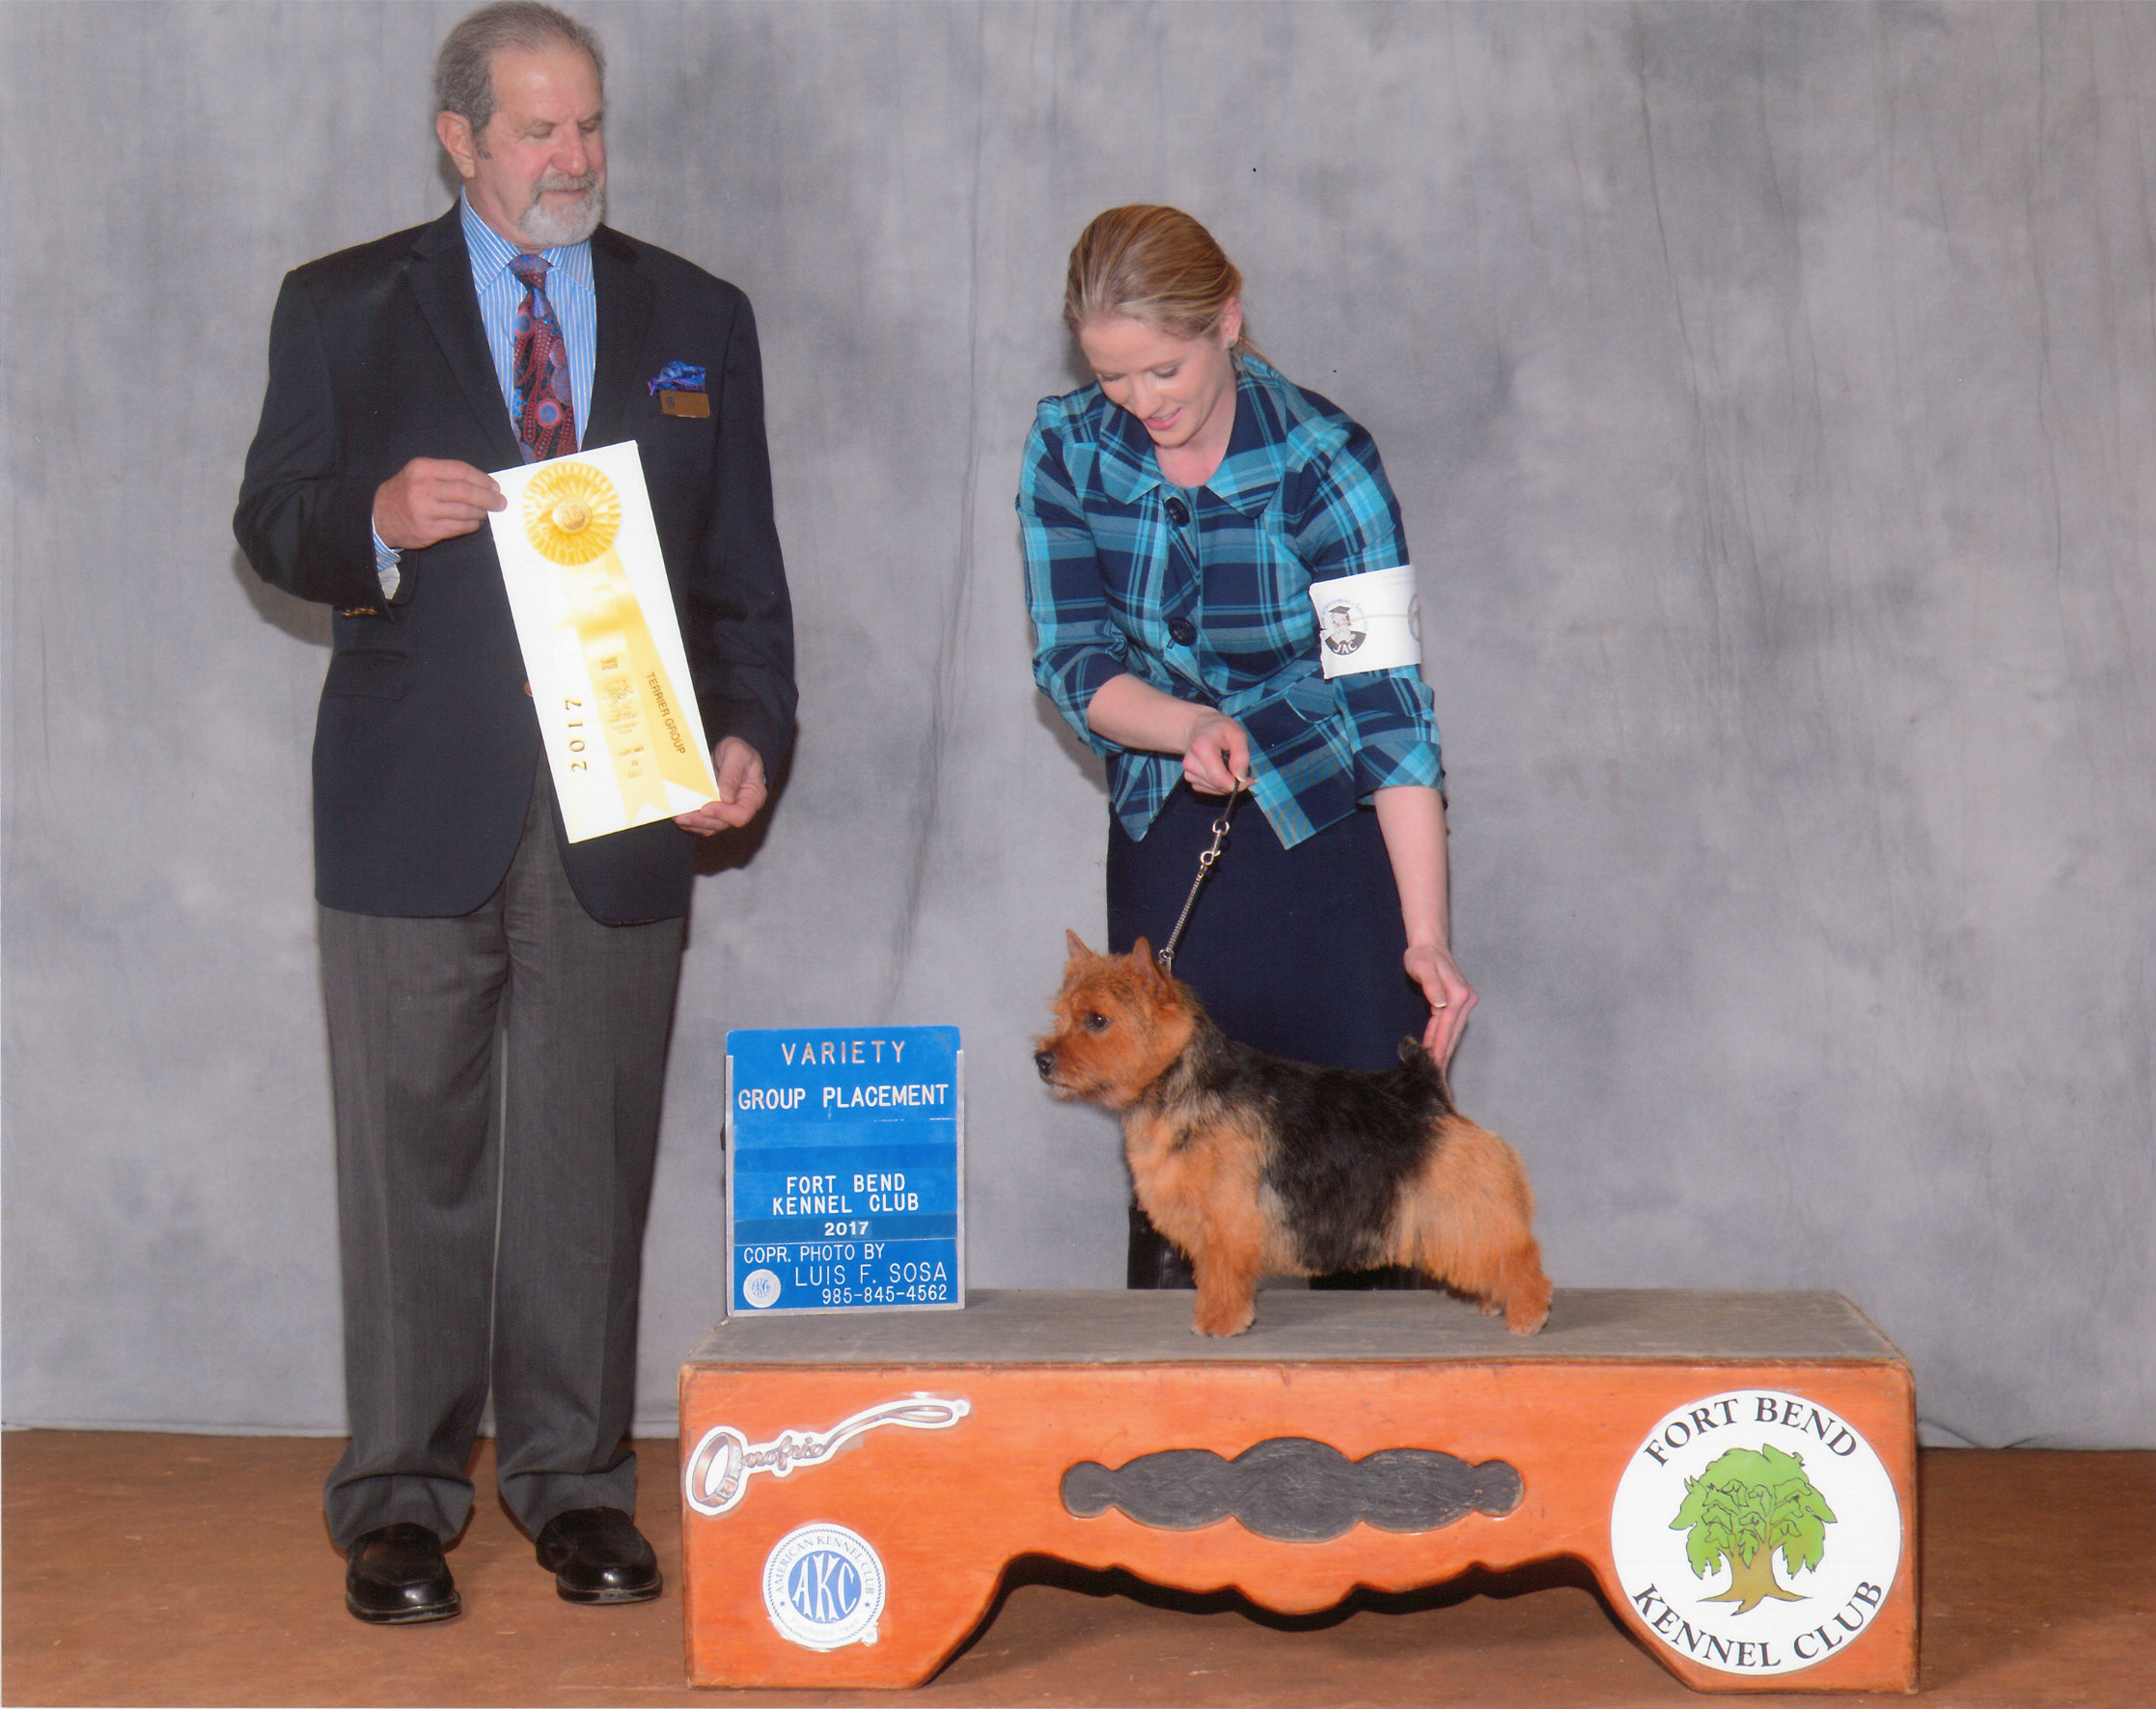 Skip receiving a Terrier Group 3 Award at Fort Bend KC under judge Norm Kenney, January 2017. Handled by Ashlie Whitmore.